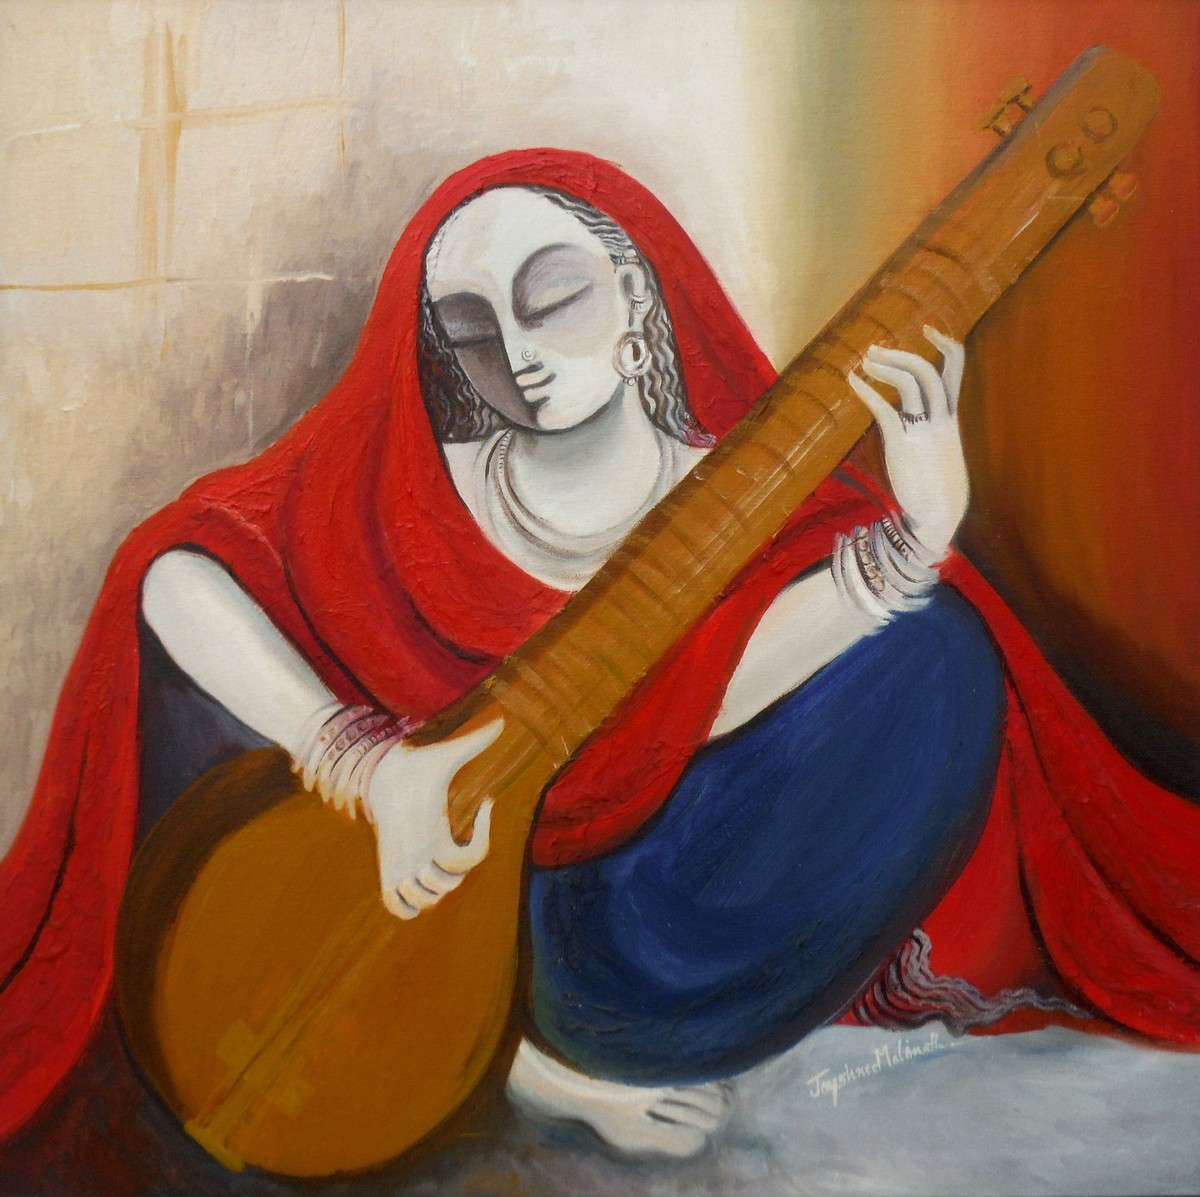 Musician 04 by Jayshree P Malimath, Traditional, Traditional Painting, Mixed Media on Canvas, Brown color